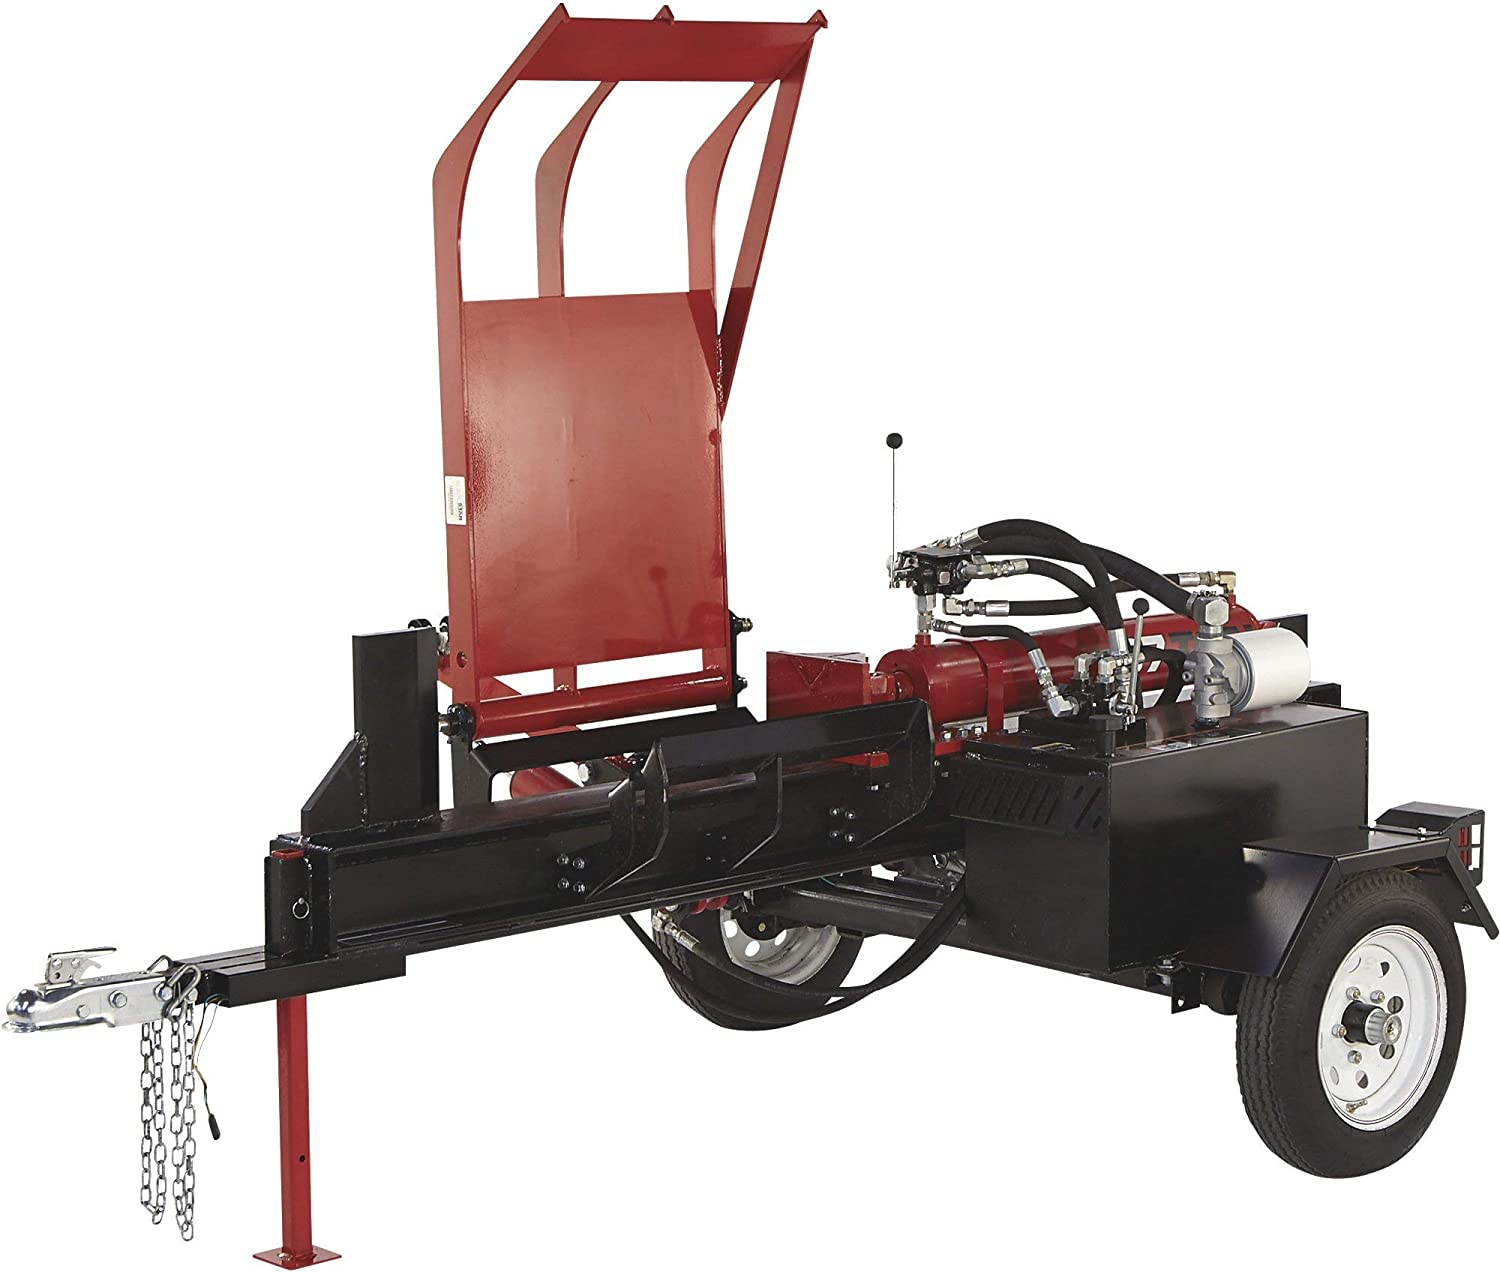 NorthStar Horizontal Log Splitter with Log Lift - 37-Ton, 389cc Honda GX390 Engine